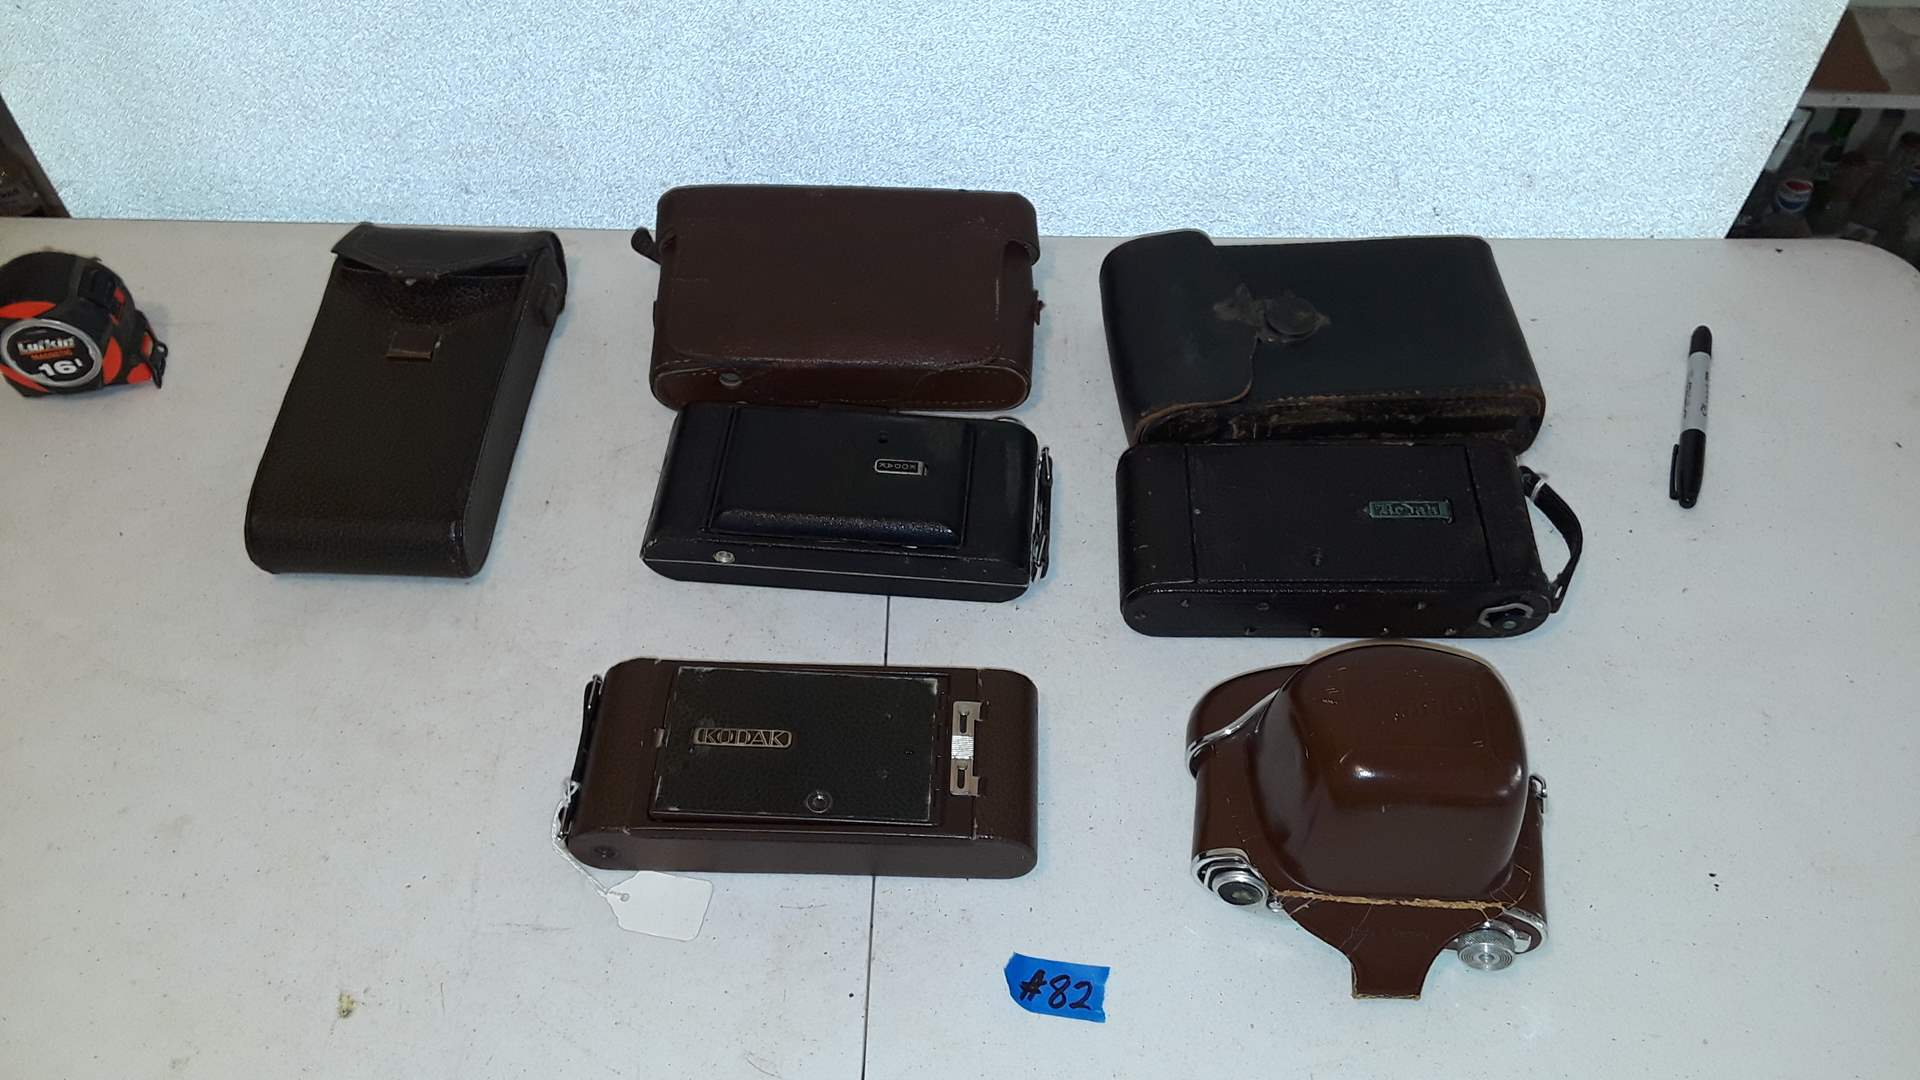 Lot # 82 - 4 VINTAGE KODAK CAMERAS, ALL ARE IN GOOD CONDITION, CASES HAVE SOME DAMAGE